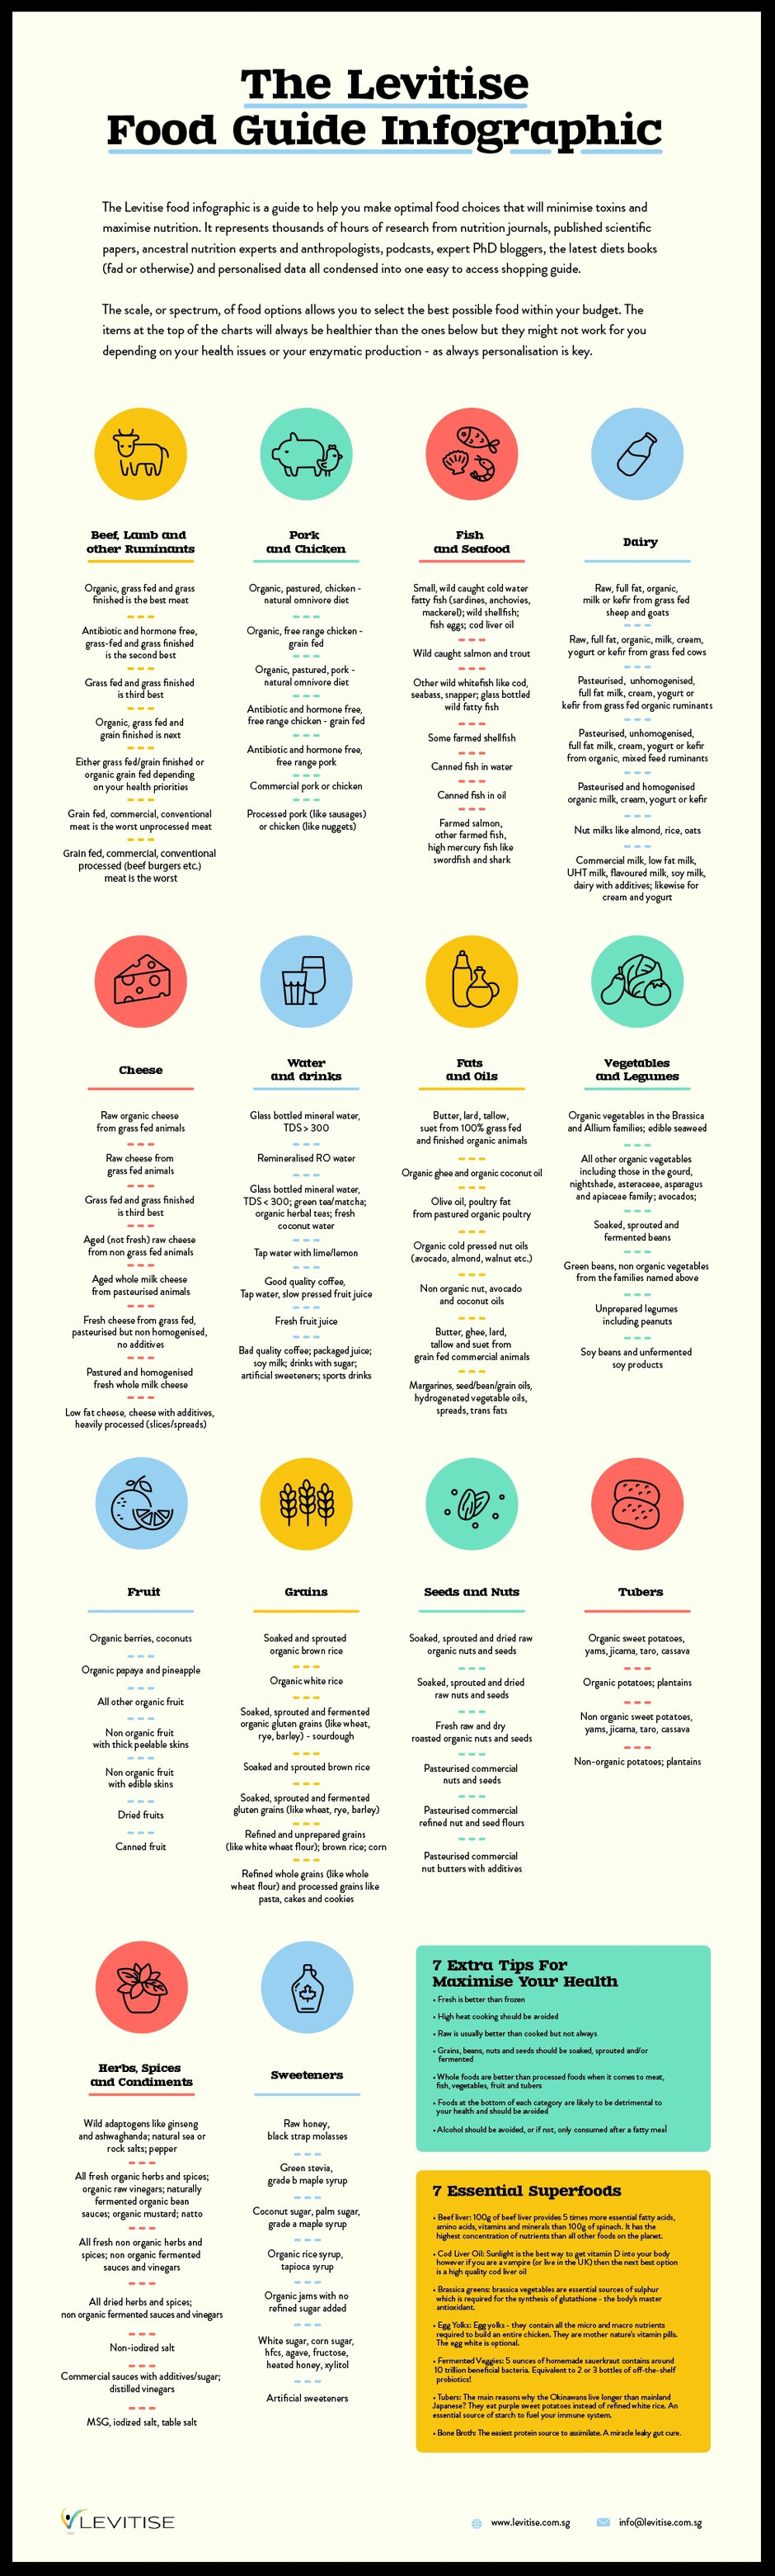 A handy infographic that displays the healthiest food options within various food groups